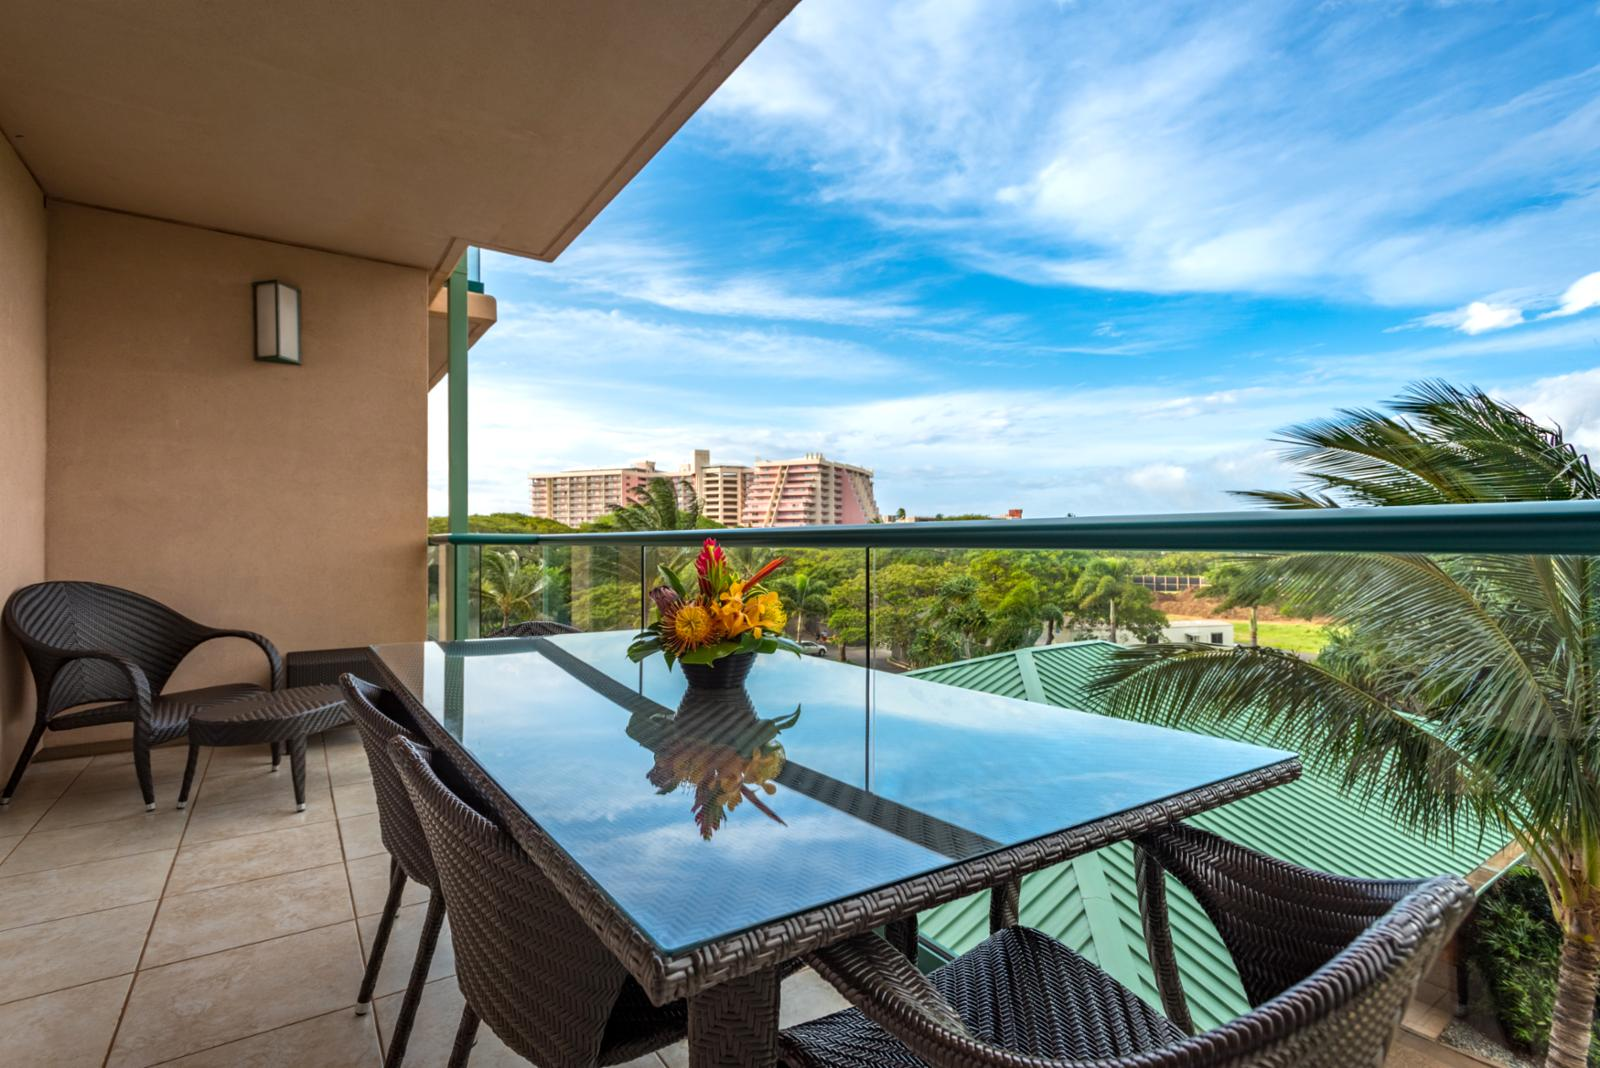 Spacious balcony with comfortable furniture - perfect for cool breezes and relaxing while on vacation!